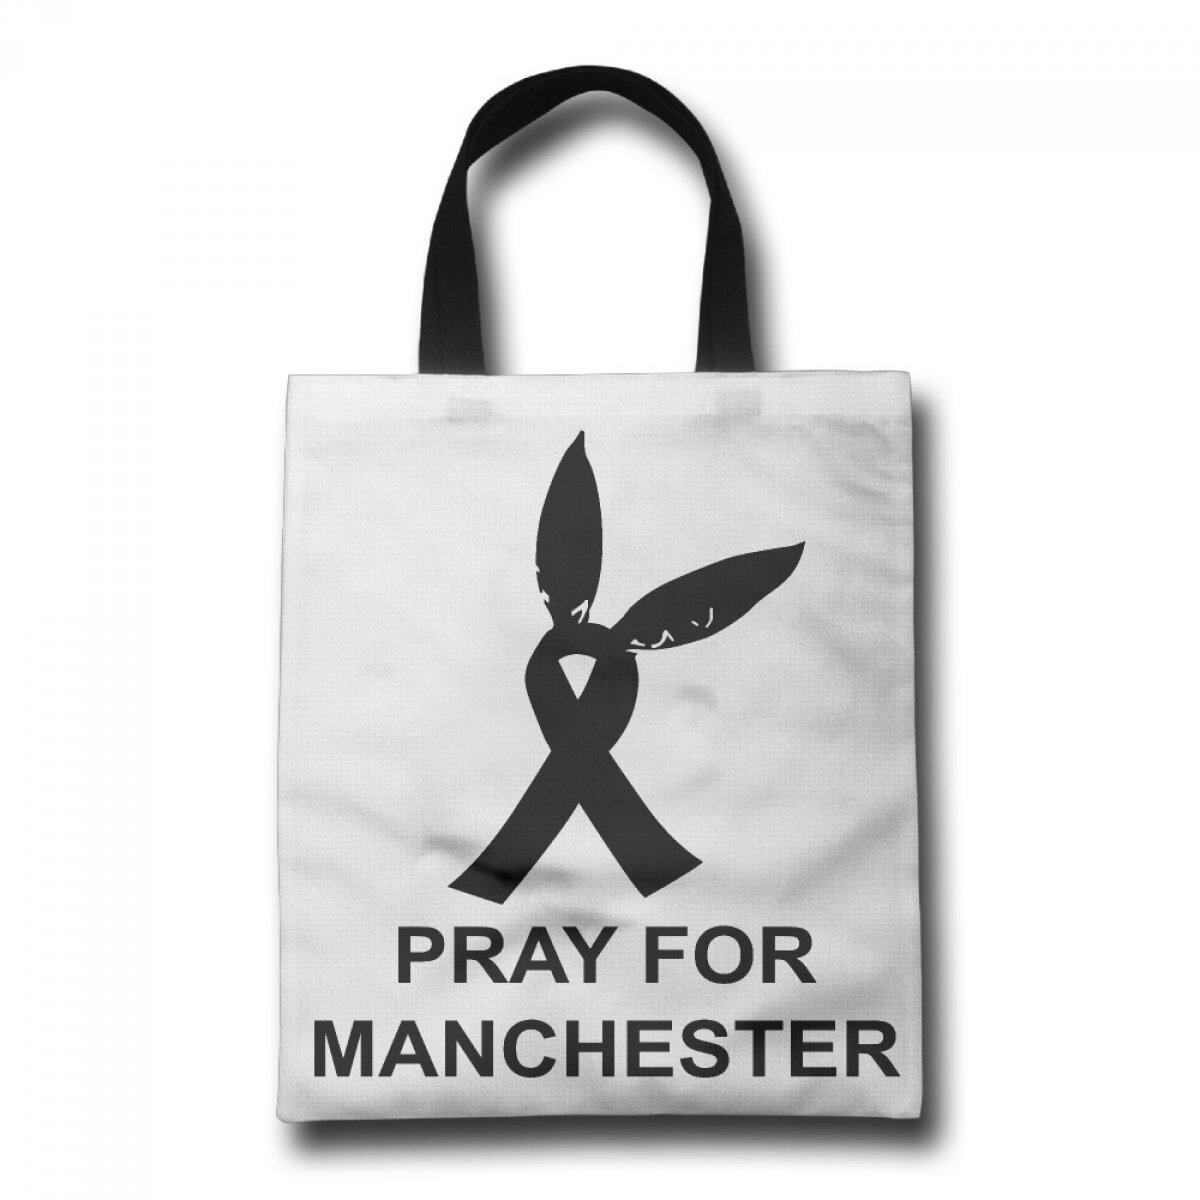 PhoRock Women Beach Tote Pray For Manchester Printed Canvas Tote Bag GWRF003 0